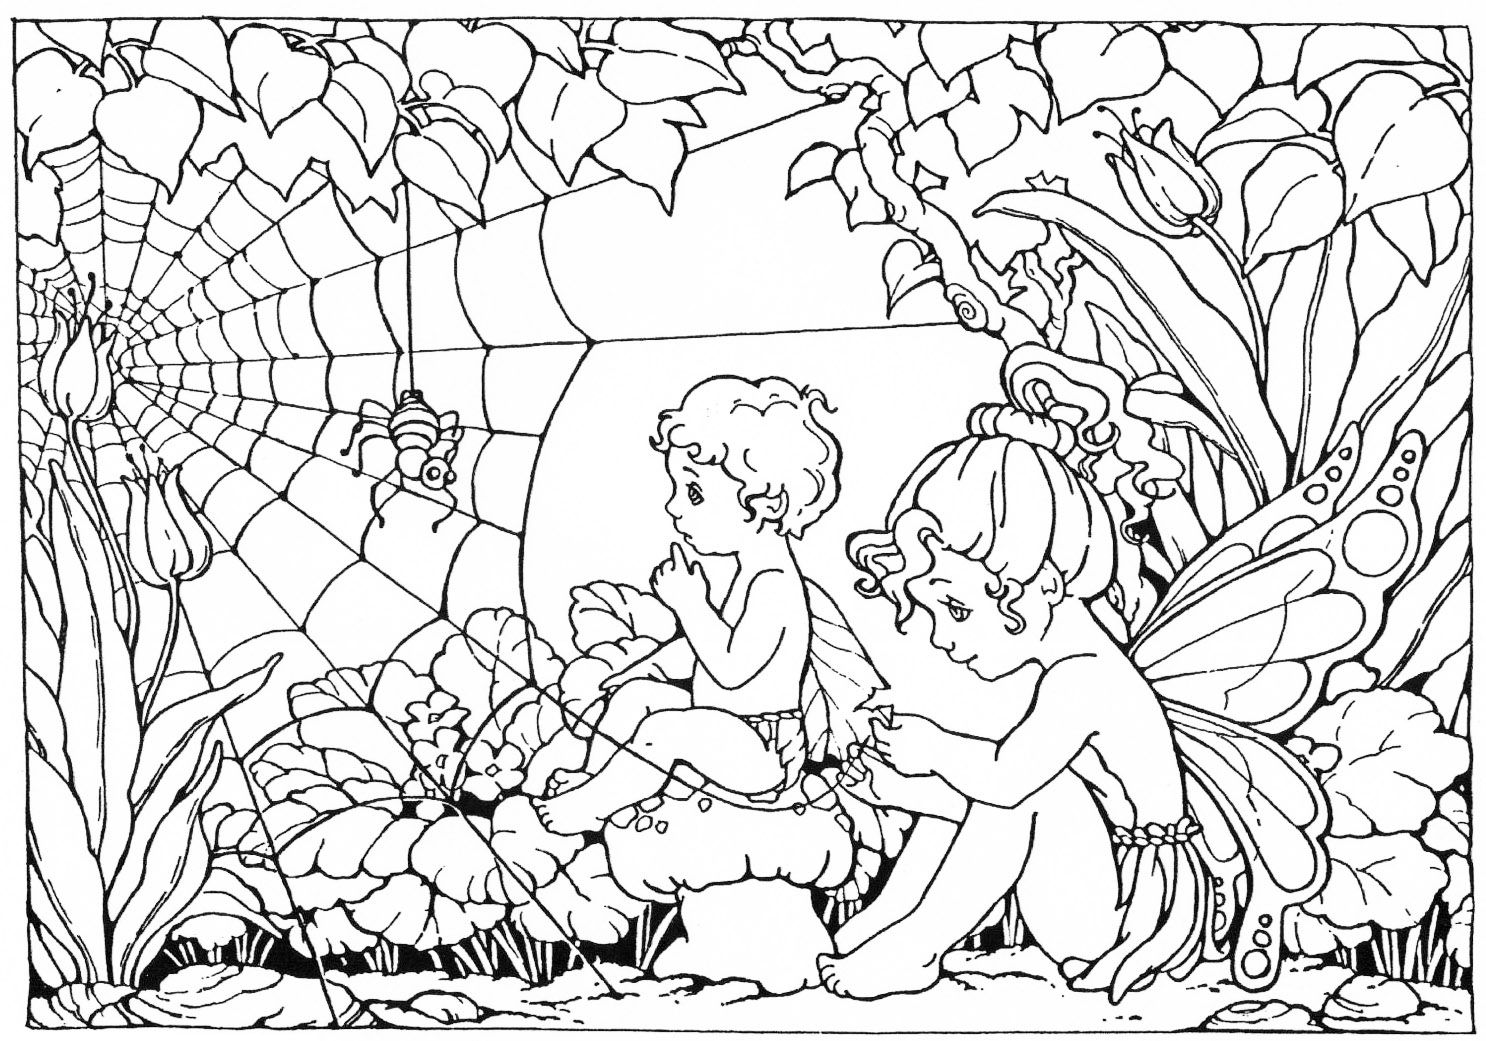 Adult Beauty Advanced Coloring Pages For Older Kids Images cute advanced coloring pages for adults printable summer free older kids images